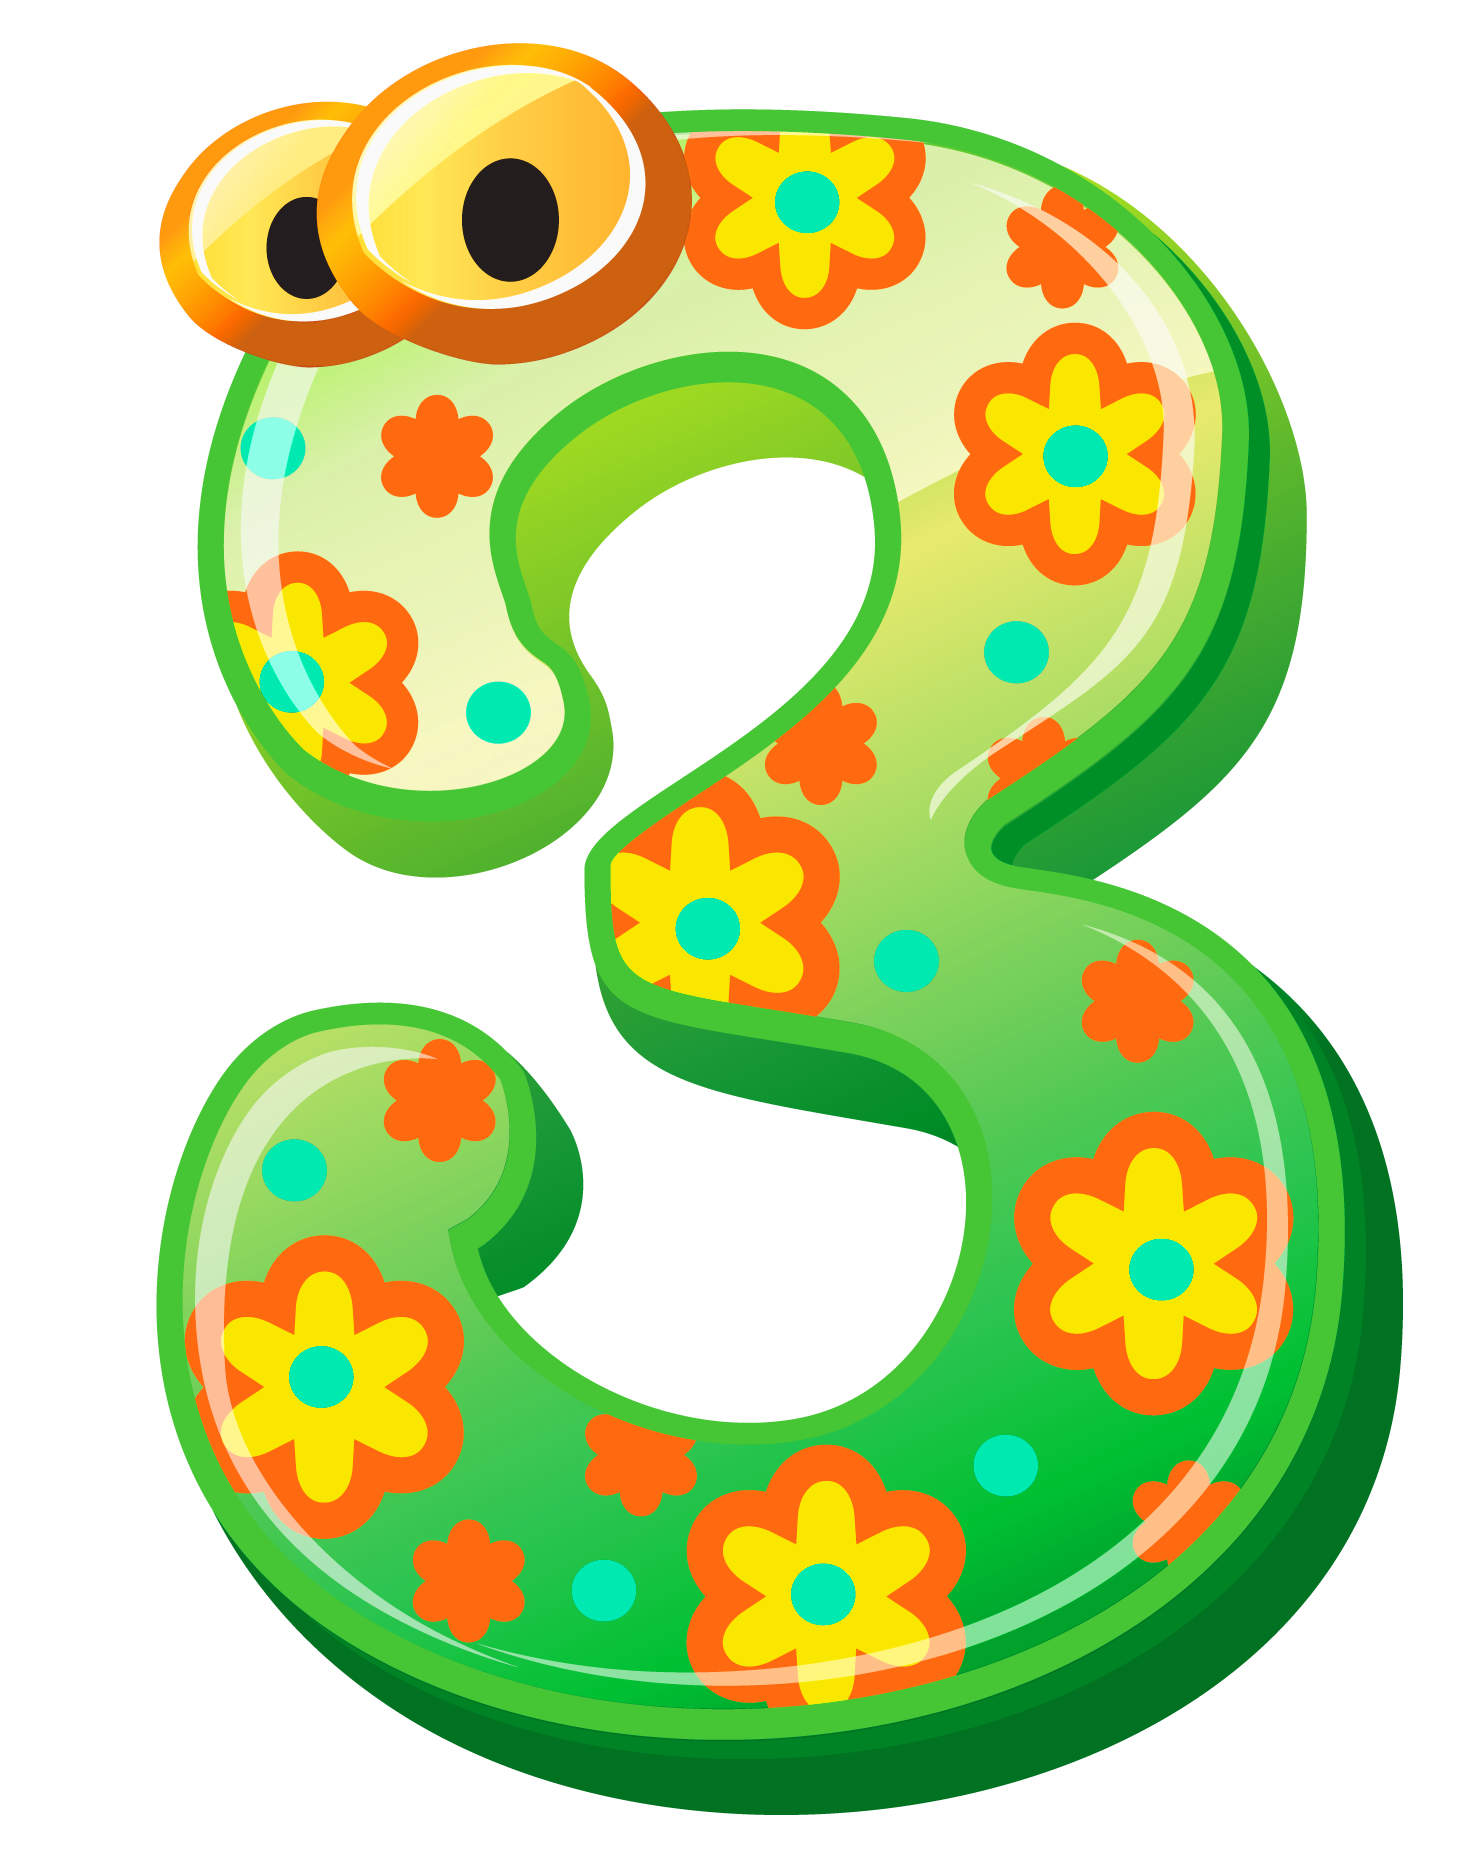 Cute three png image. Number 3 clipart